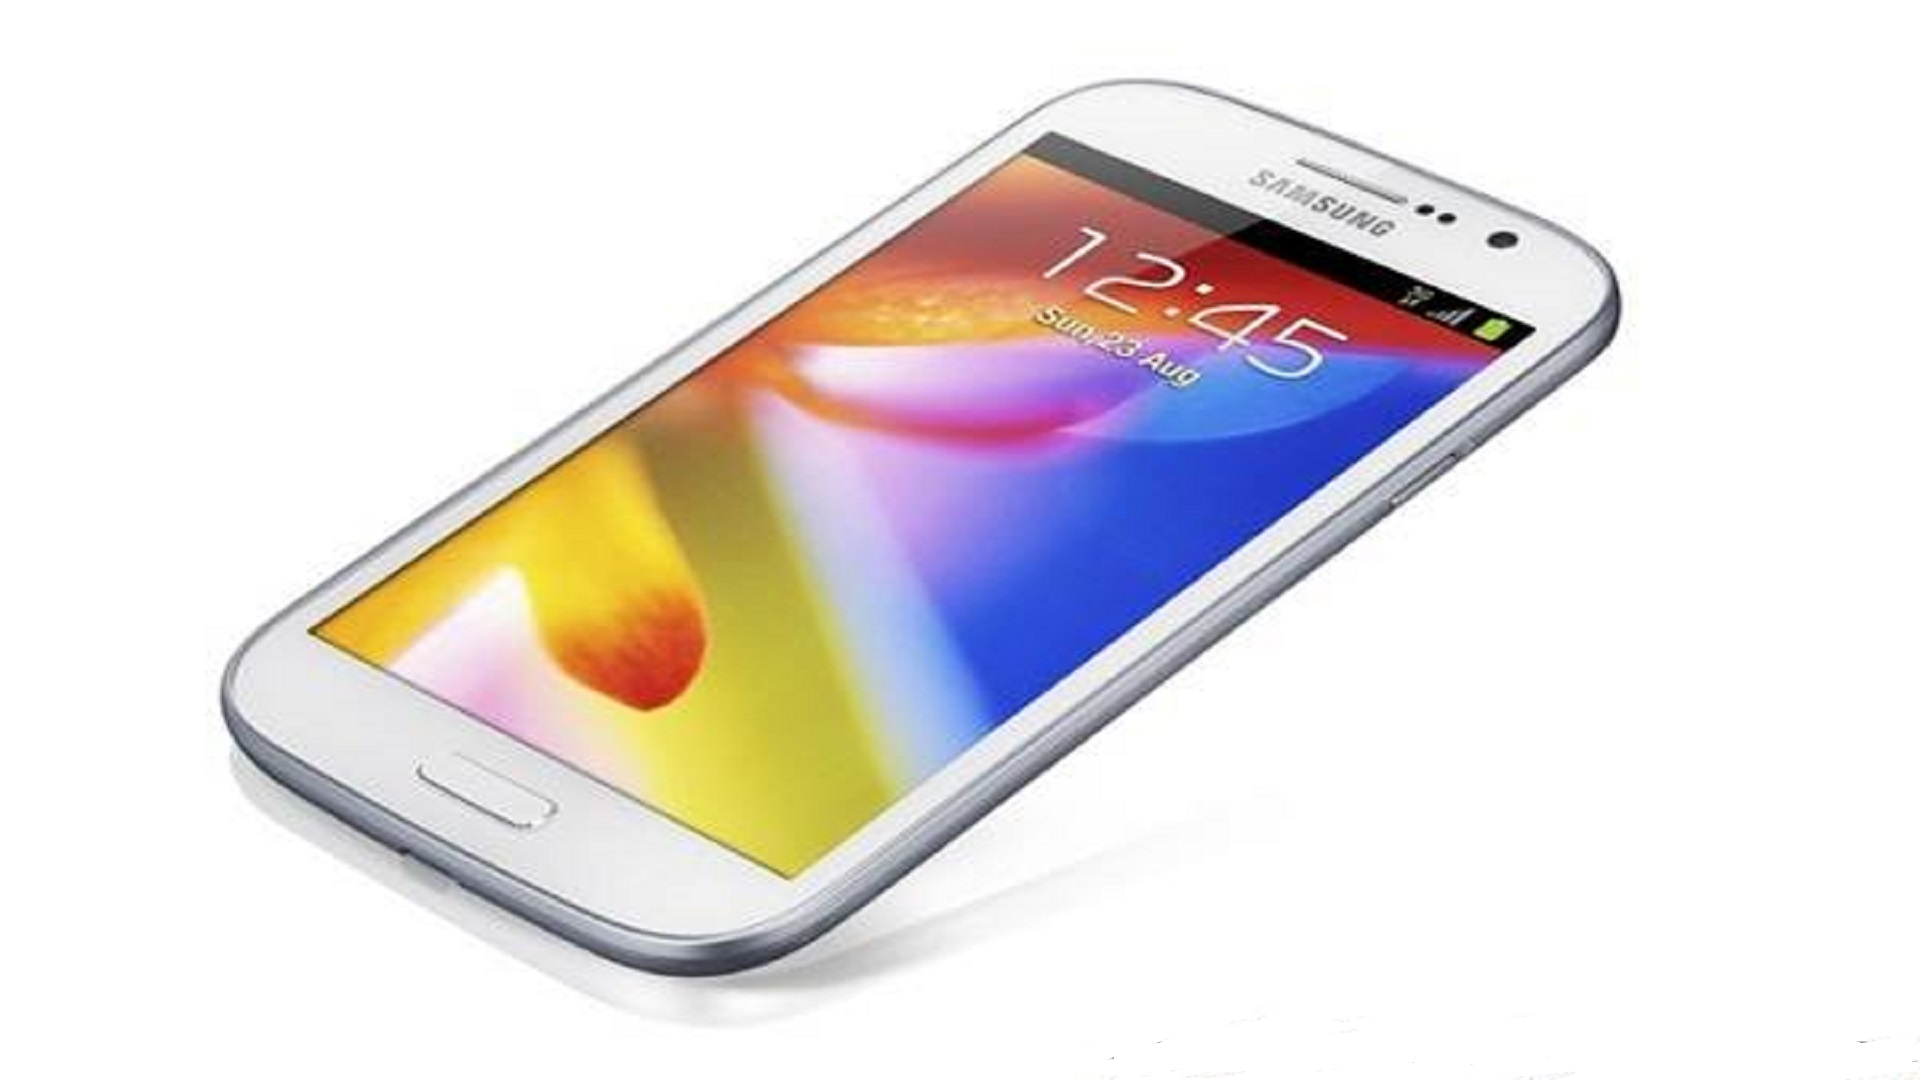 Samsung Galaxy Grand Beautiful Hd Free Wallpapers